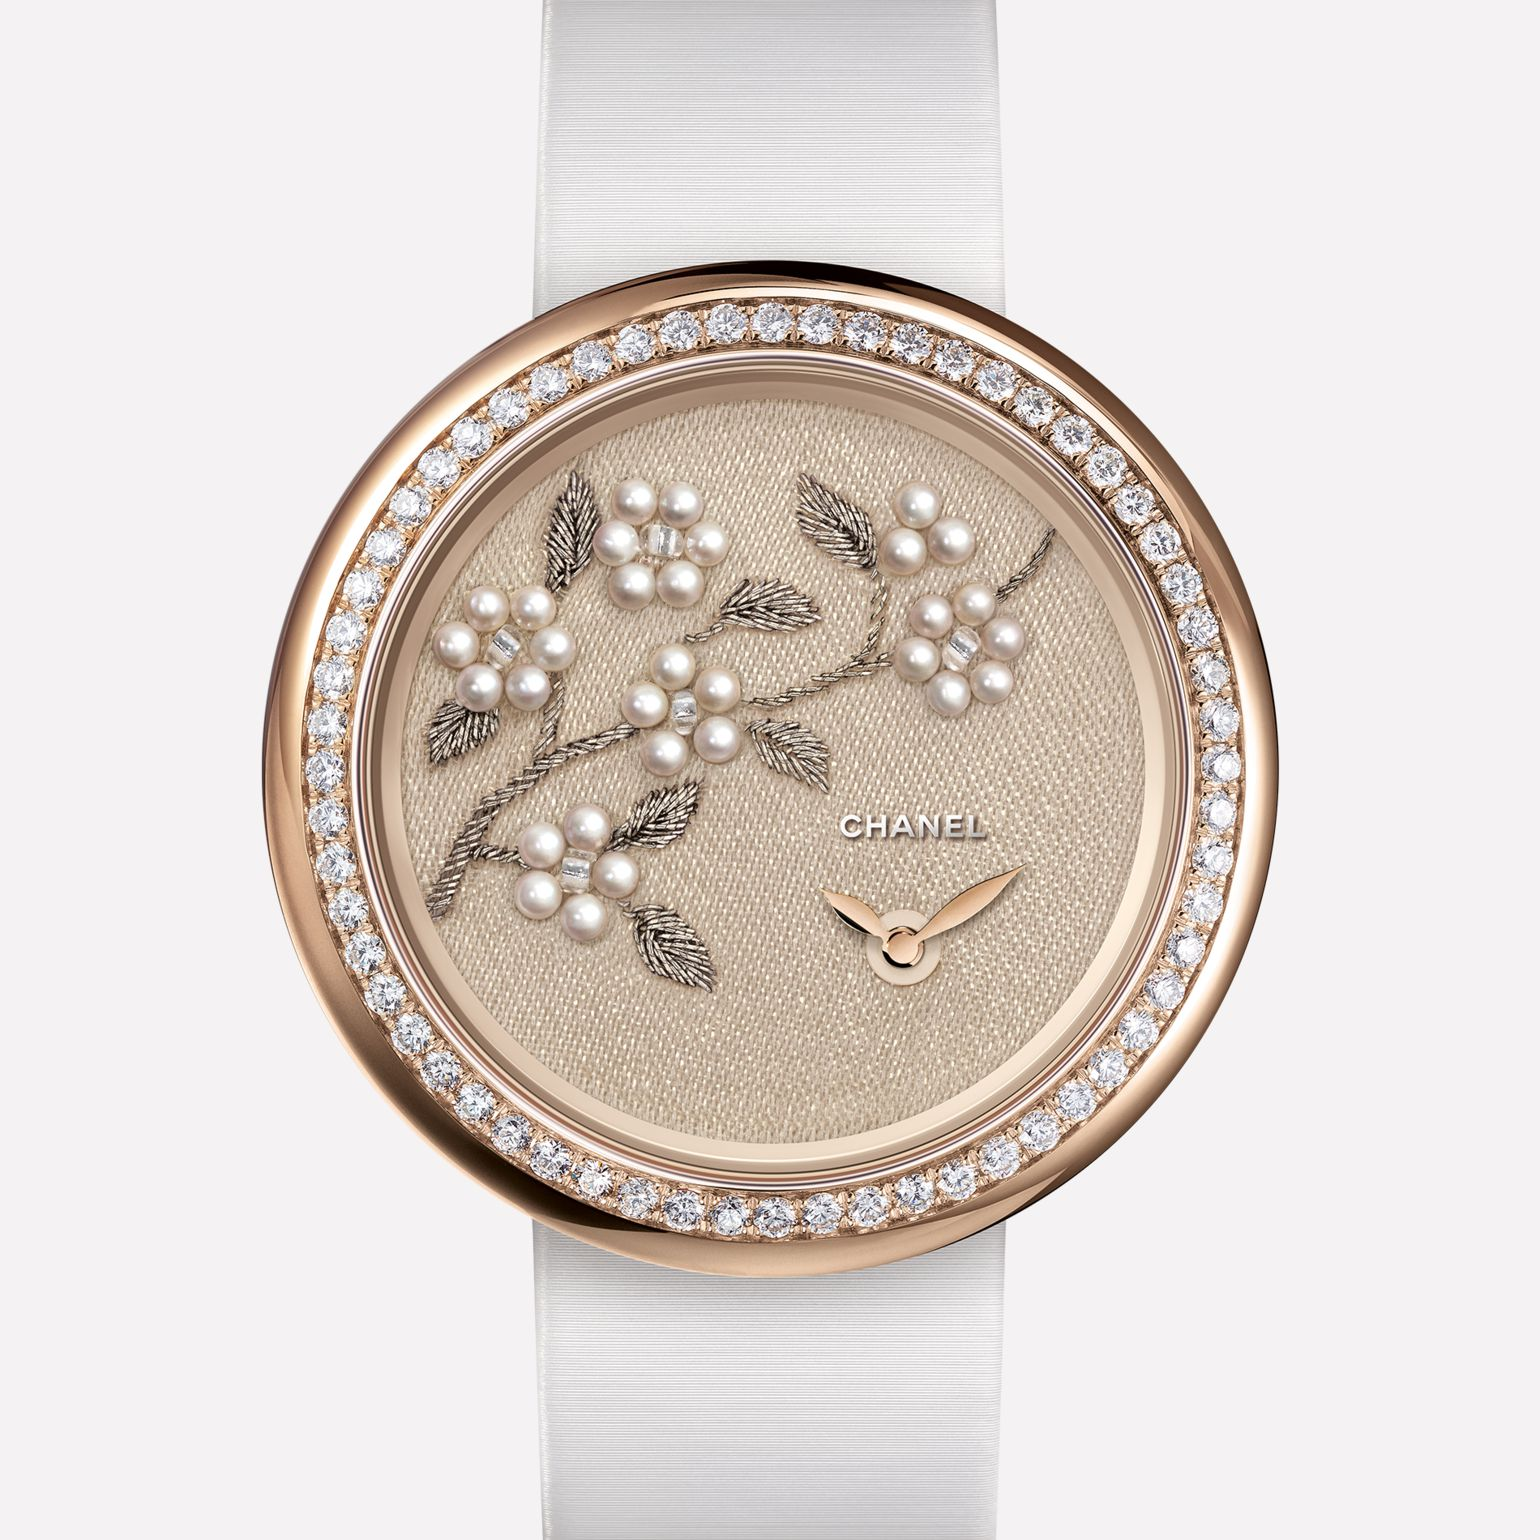 Mademoiselle Privé Camellia branch in gold thread, fine pearls, and glass beads - Lesage embroidery